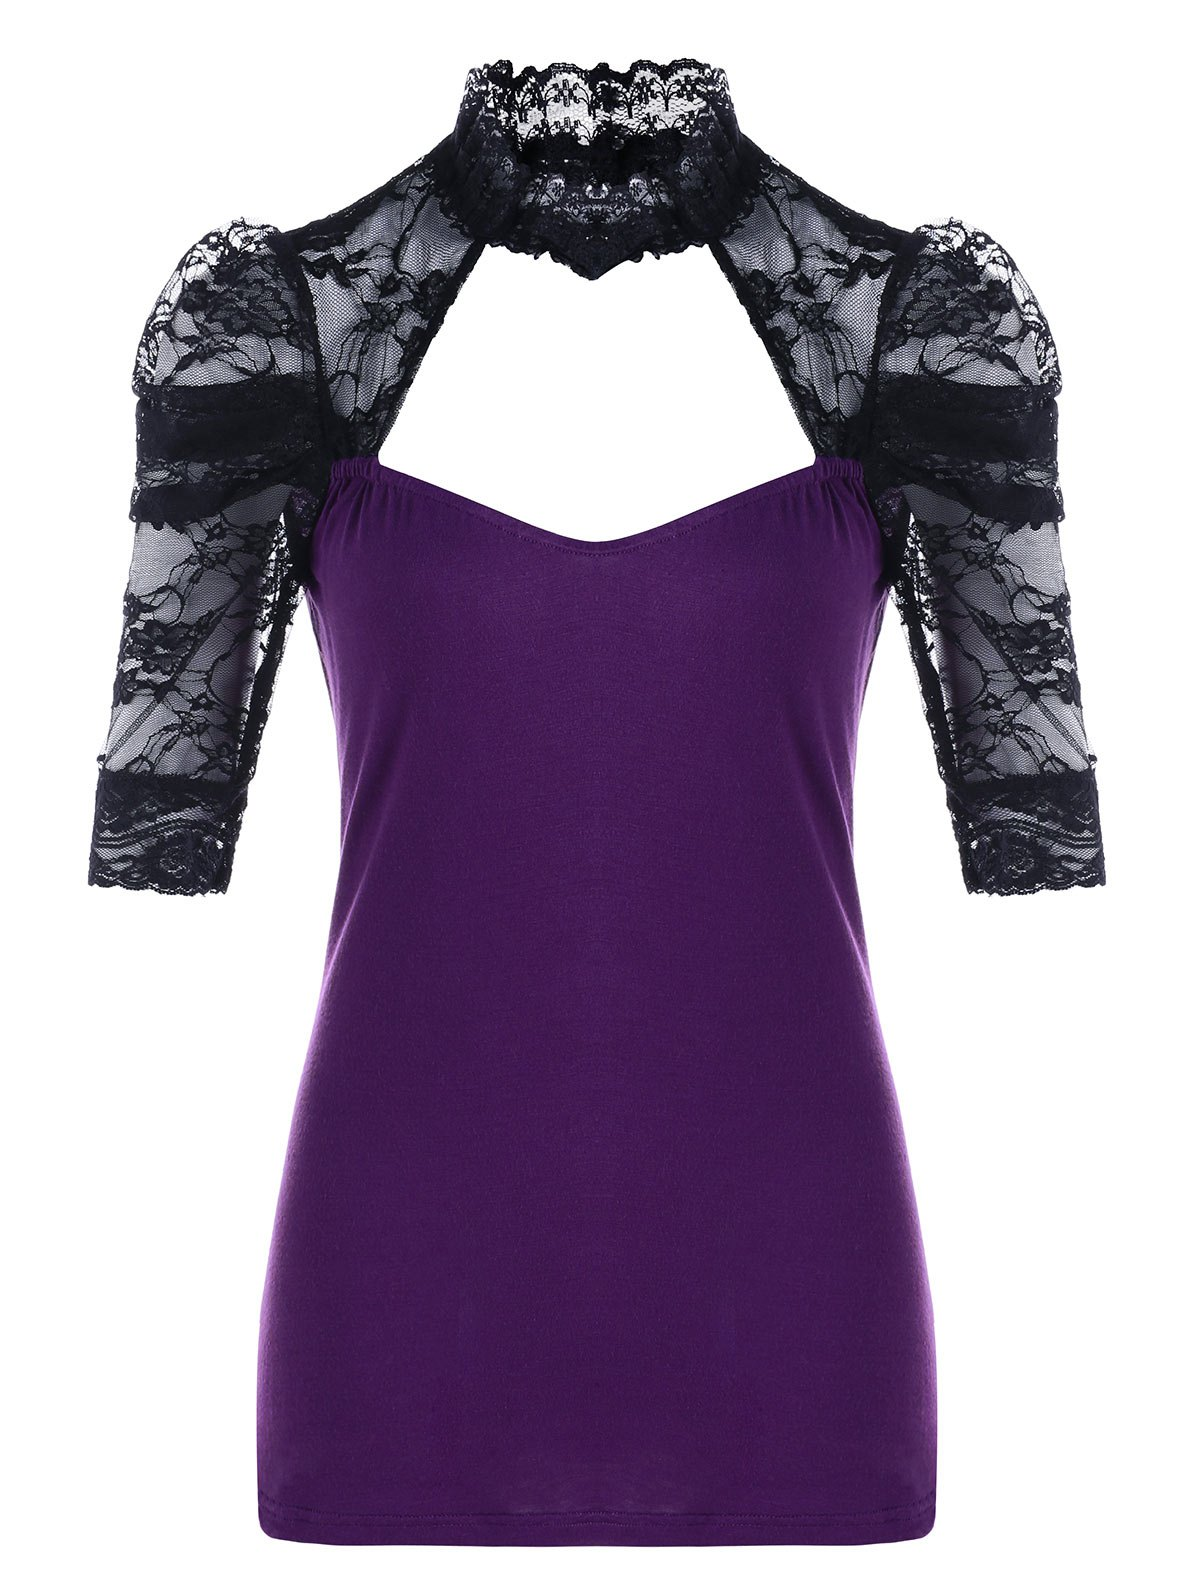 Cut Out Lace Insert TeeWOMEN<br><br>Size: 2XL; Color: PURPLE; Material: Cotton,Spandex; Shirt Length: Regular; Sleeve Length: Short; Collar: Stand-Up Collar; Style: Fashion; Season: Fall,Spring; Pattern Type: Patchwork; Weight: 0.1700kg; Package Contents: 1 x T-shirt;